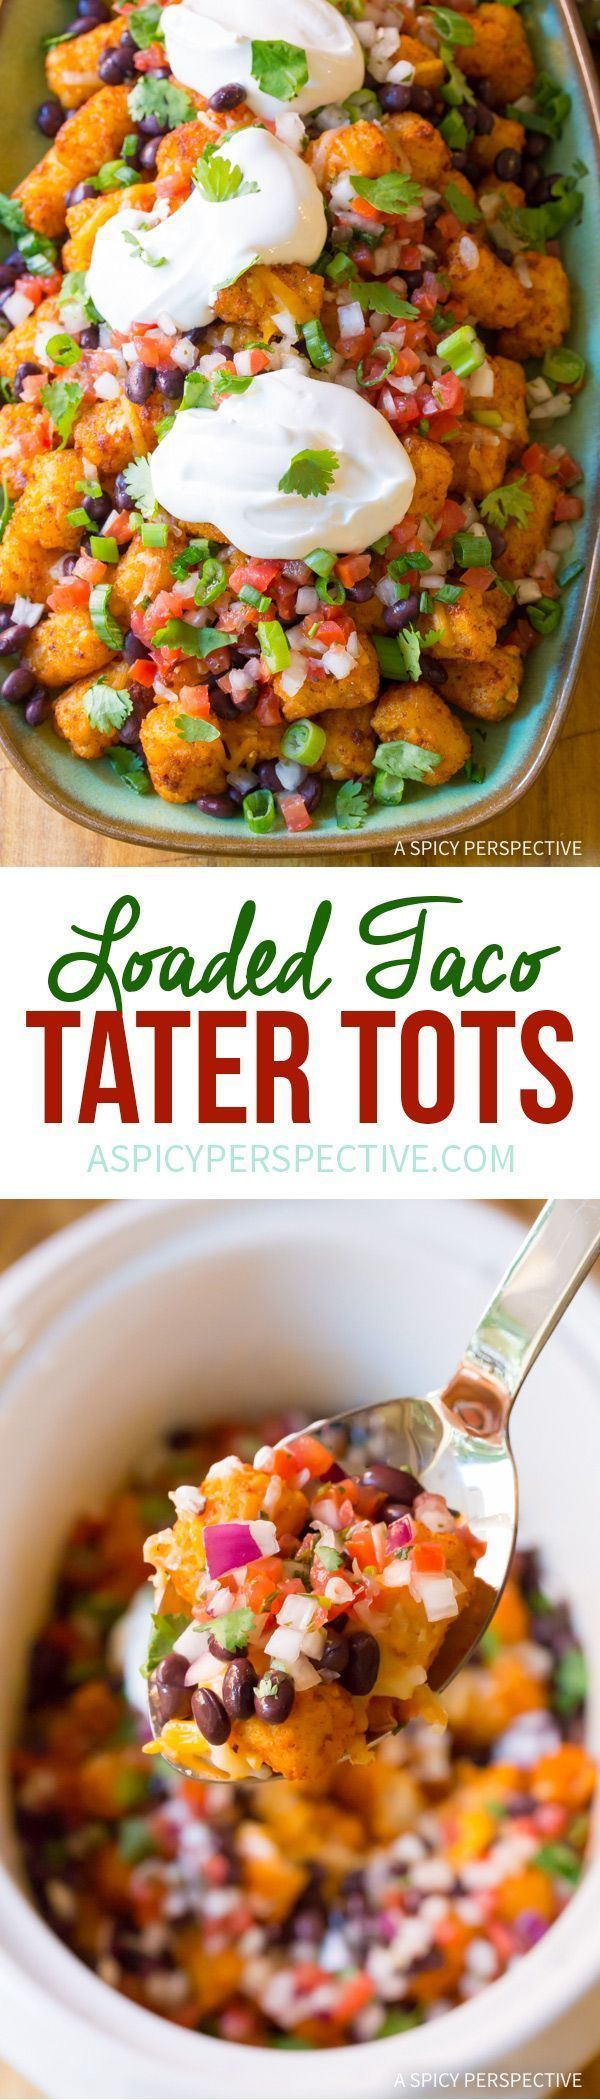 The Best Slow Cooker Taco Tater Tots (Two Ways!) An easy party recipe you can lighten-up! #glutenfree #lowfat #slowcooker